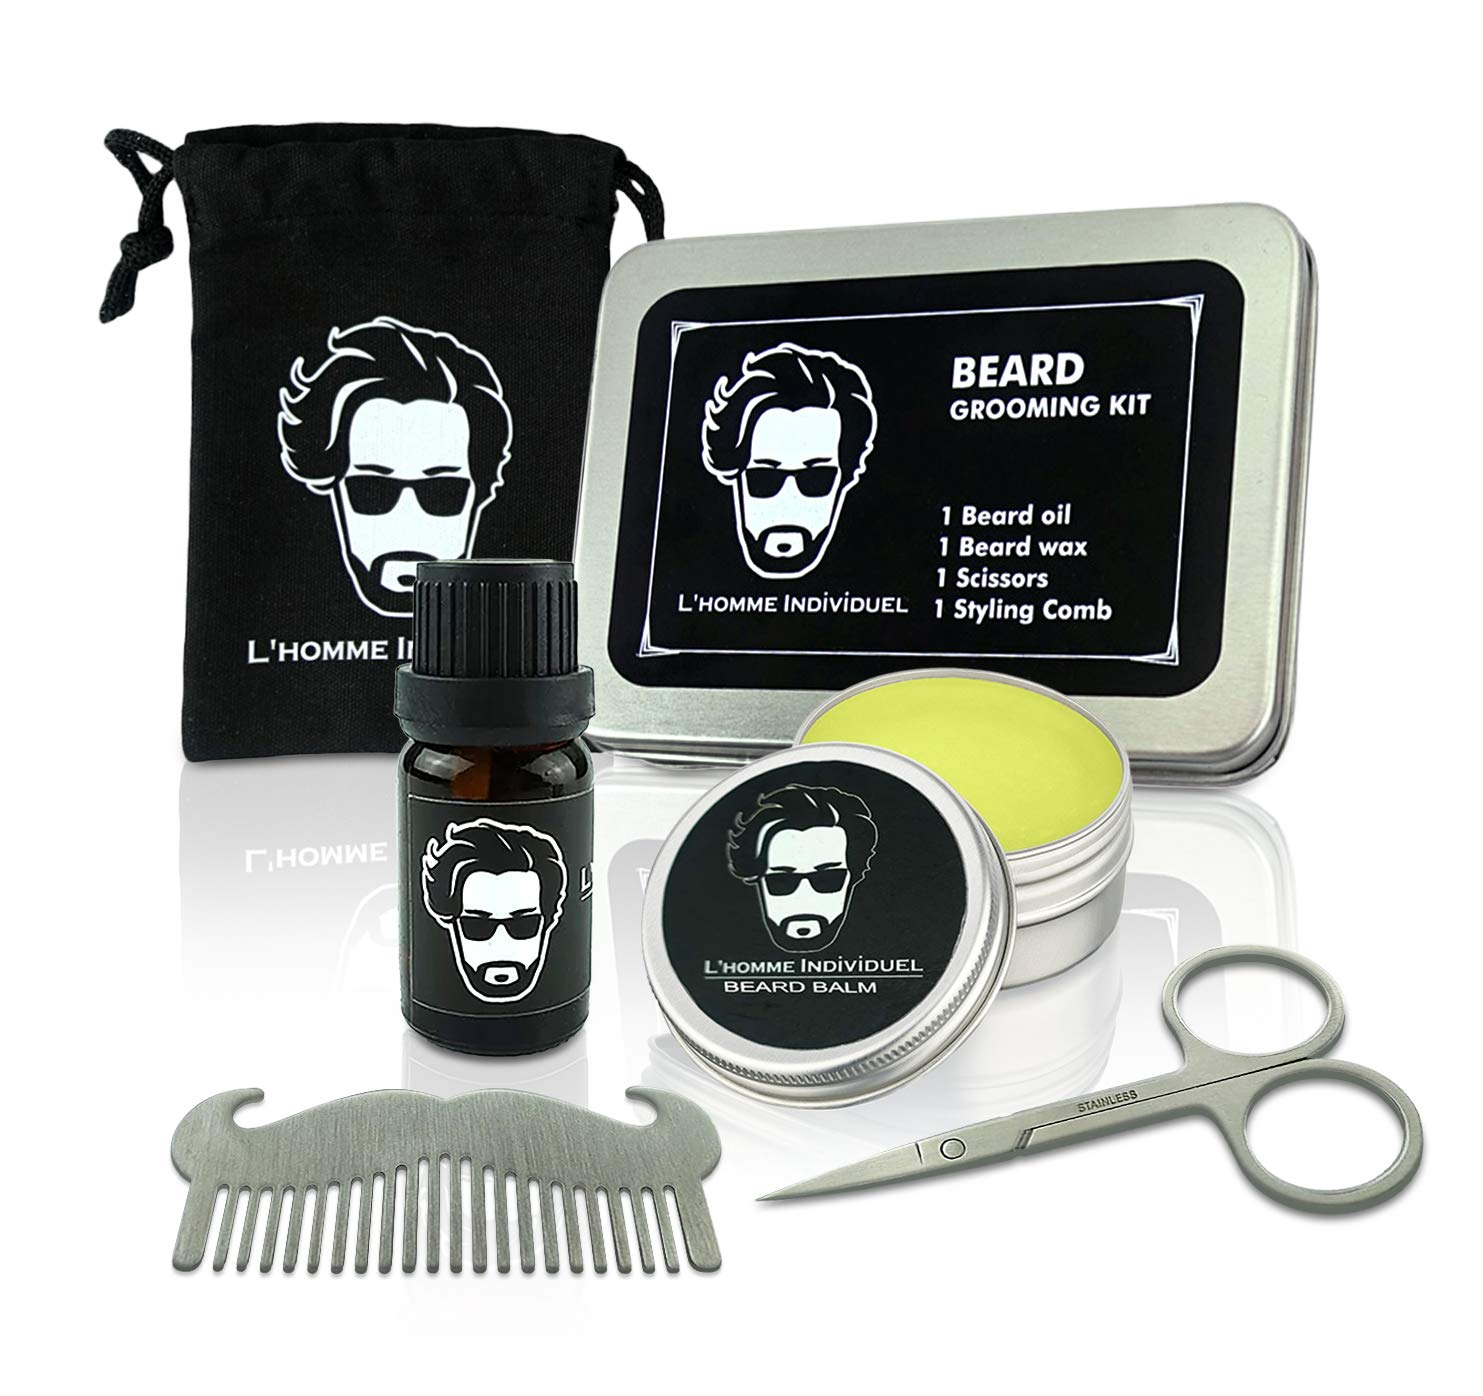 L'homme Individuel Beard Grooming & Trimming Kit for Men